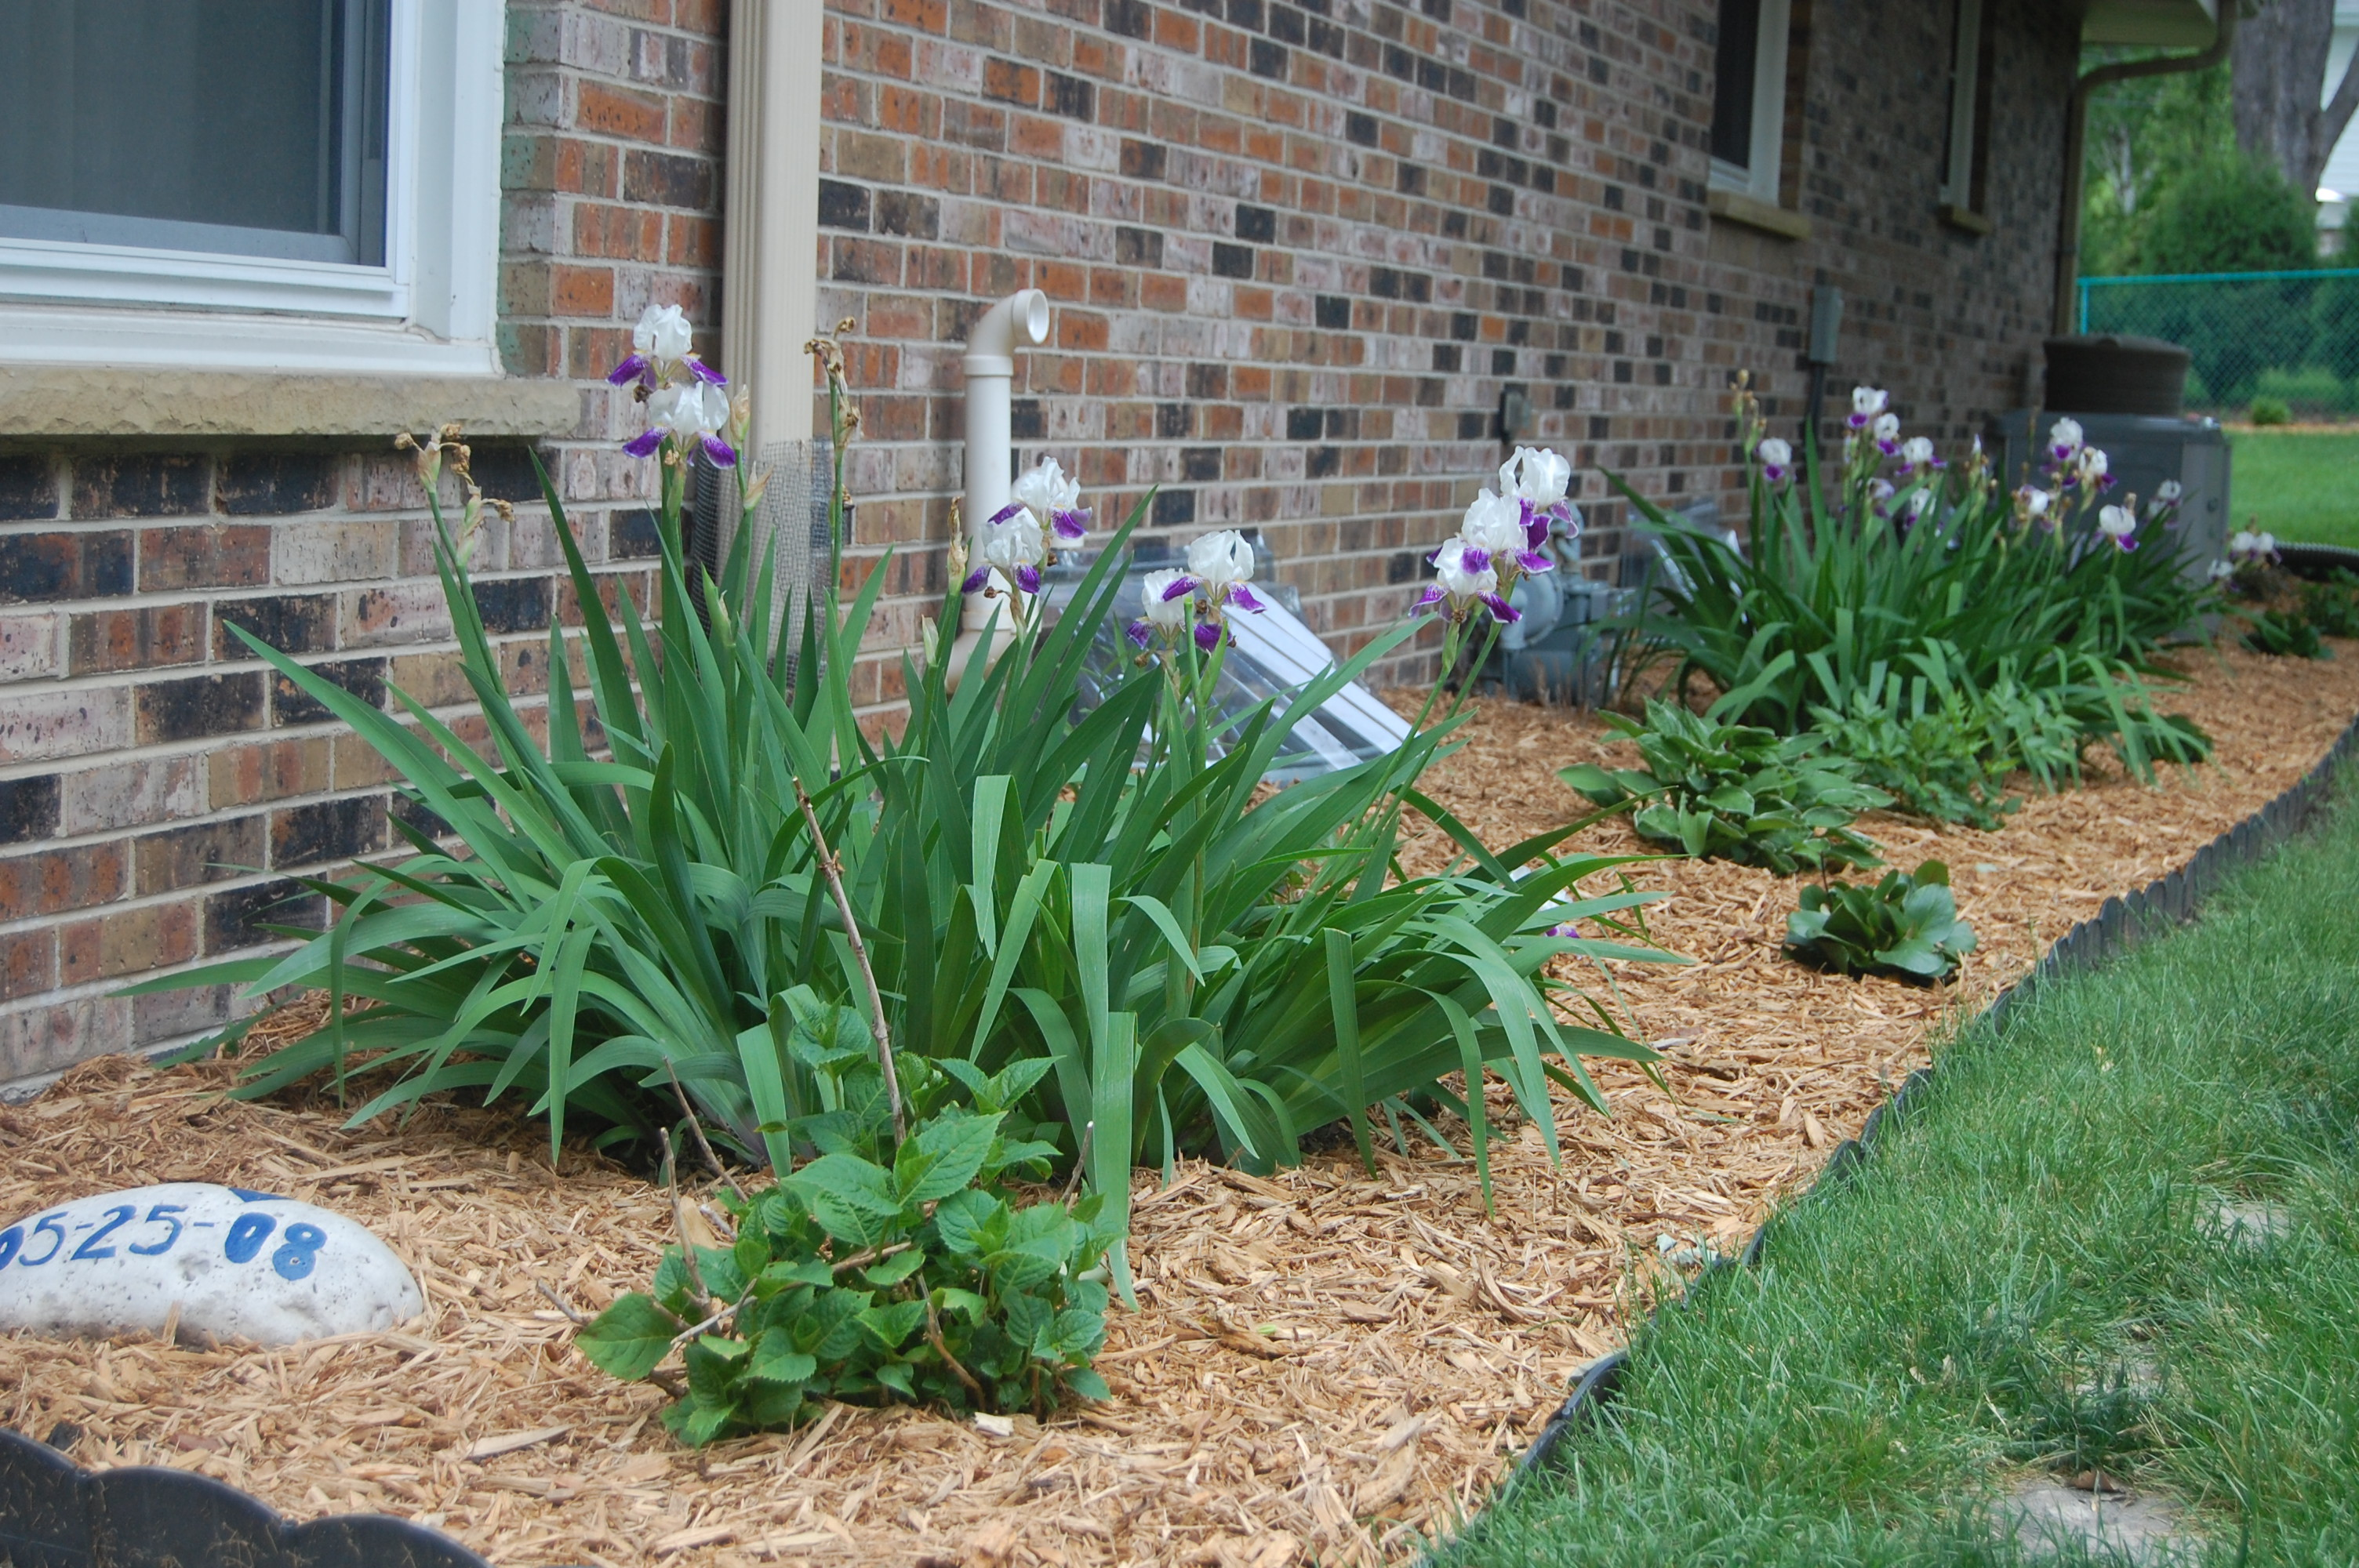 Landscaping Bushes For Wisconsin : In the season and next year when our small plants blossom bloom